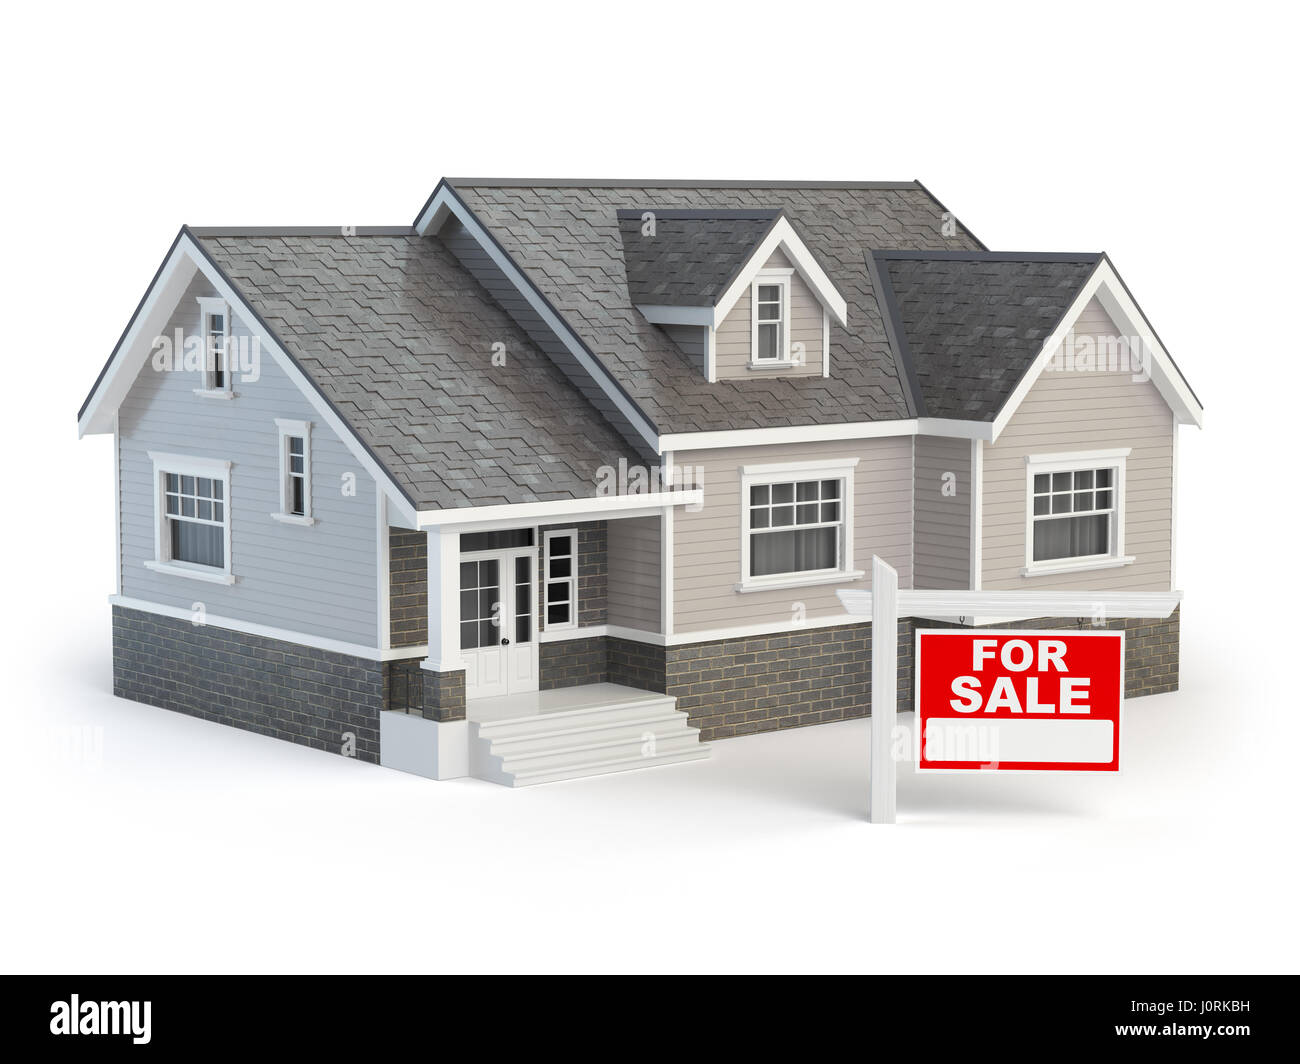 House and for sale real estate sign isolated on white. 3d illustration - Stock Image